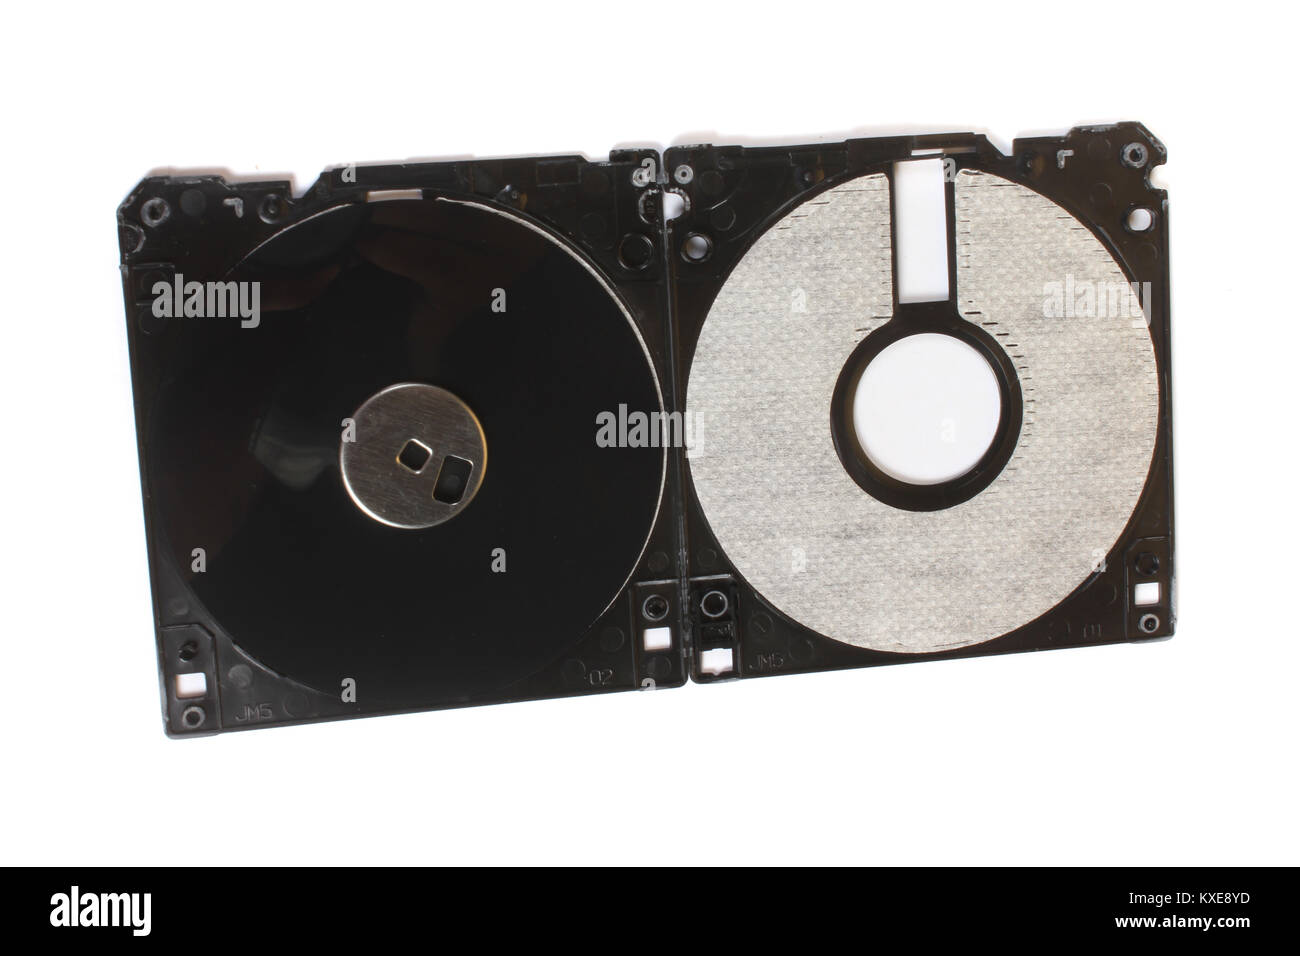 An old floppy used for storing data stripped down showing its magnetic disc. - Stock Image